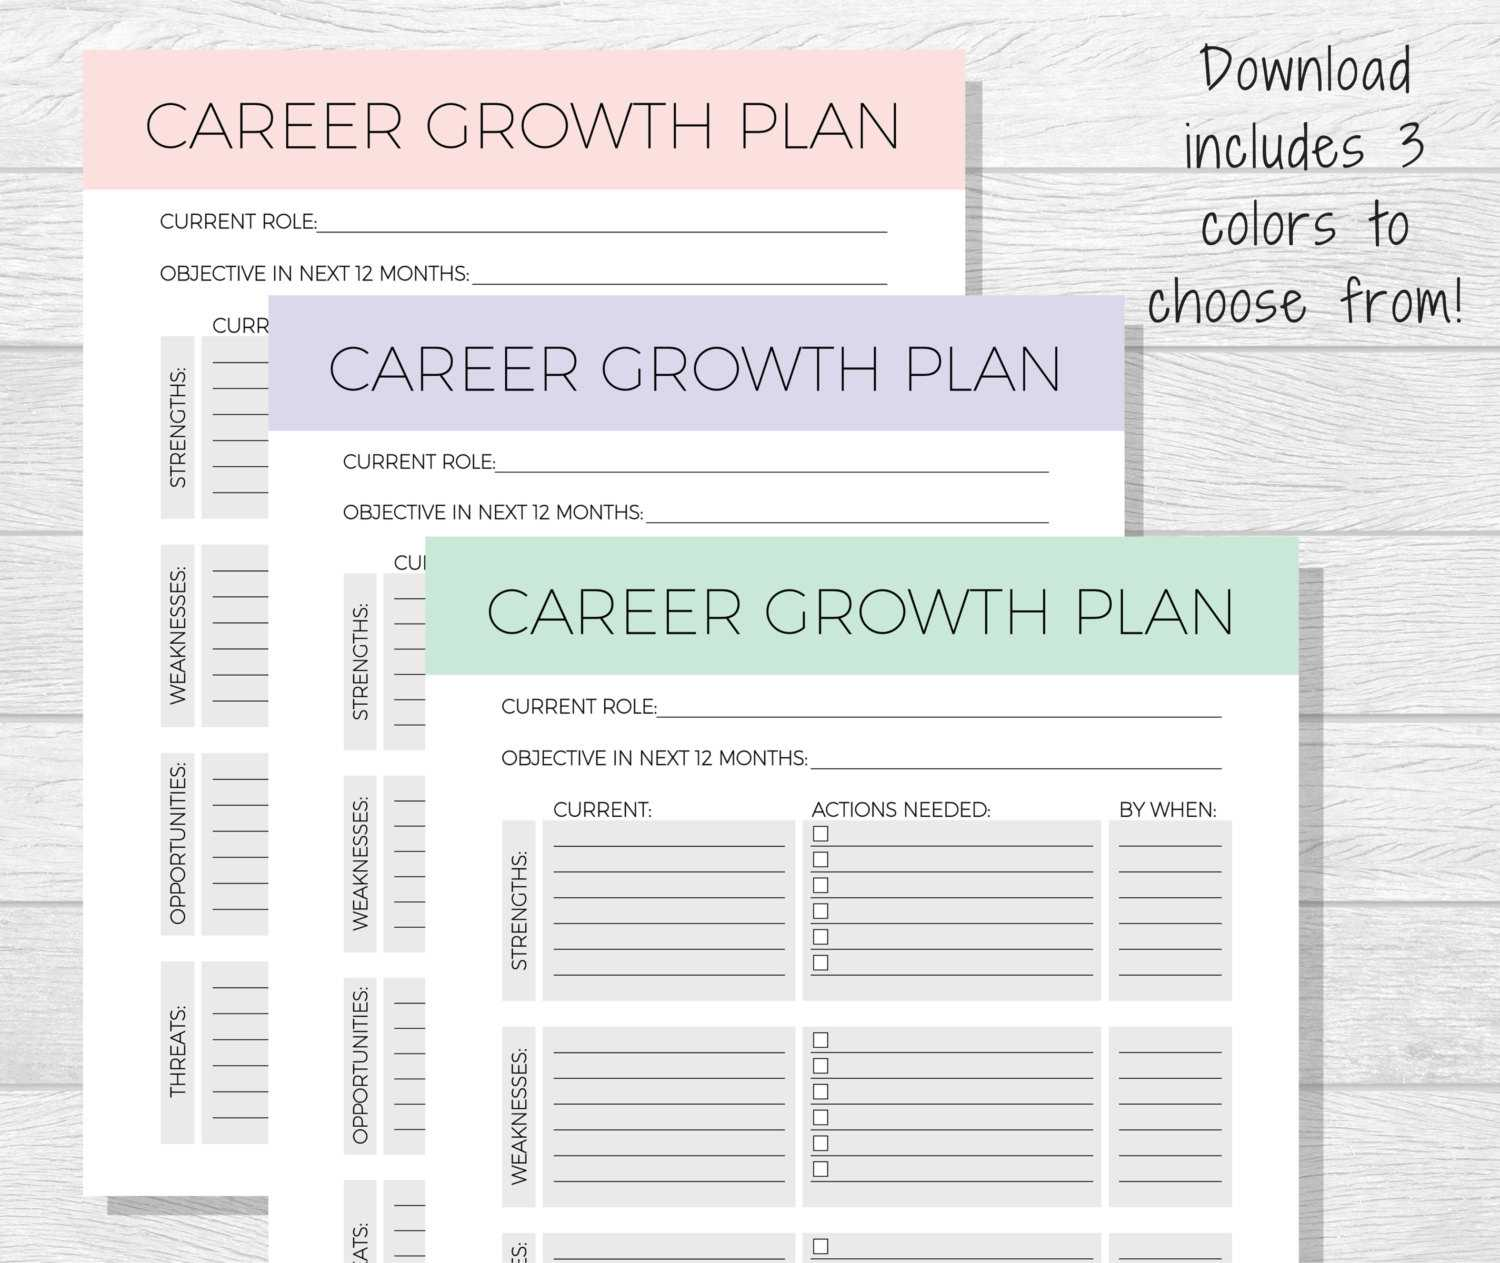 How To Make Pdf Files To Sell On Etsy Business Plan Template In Etsy Business Plan Template